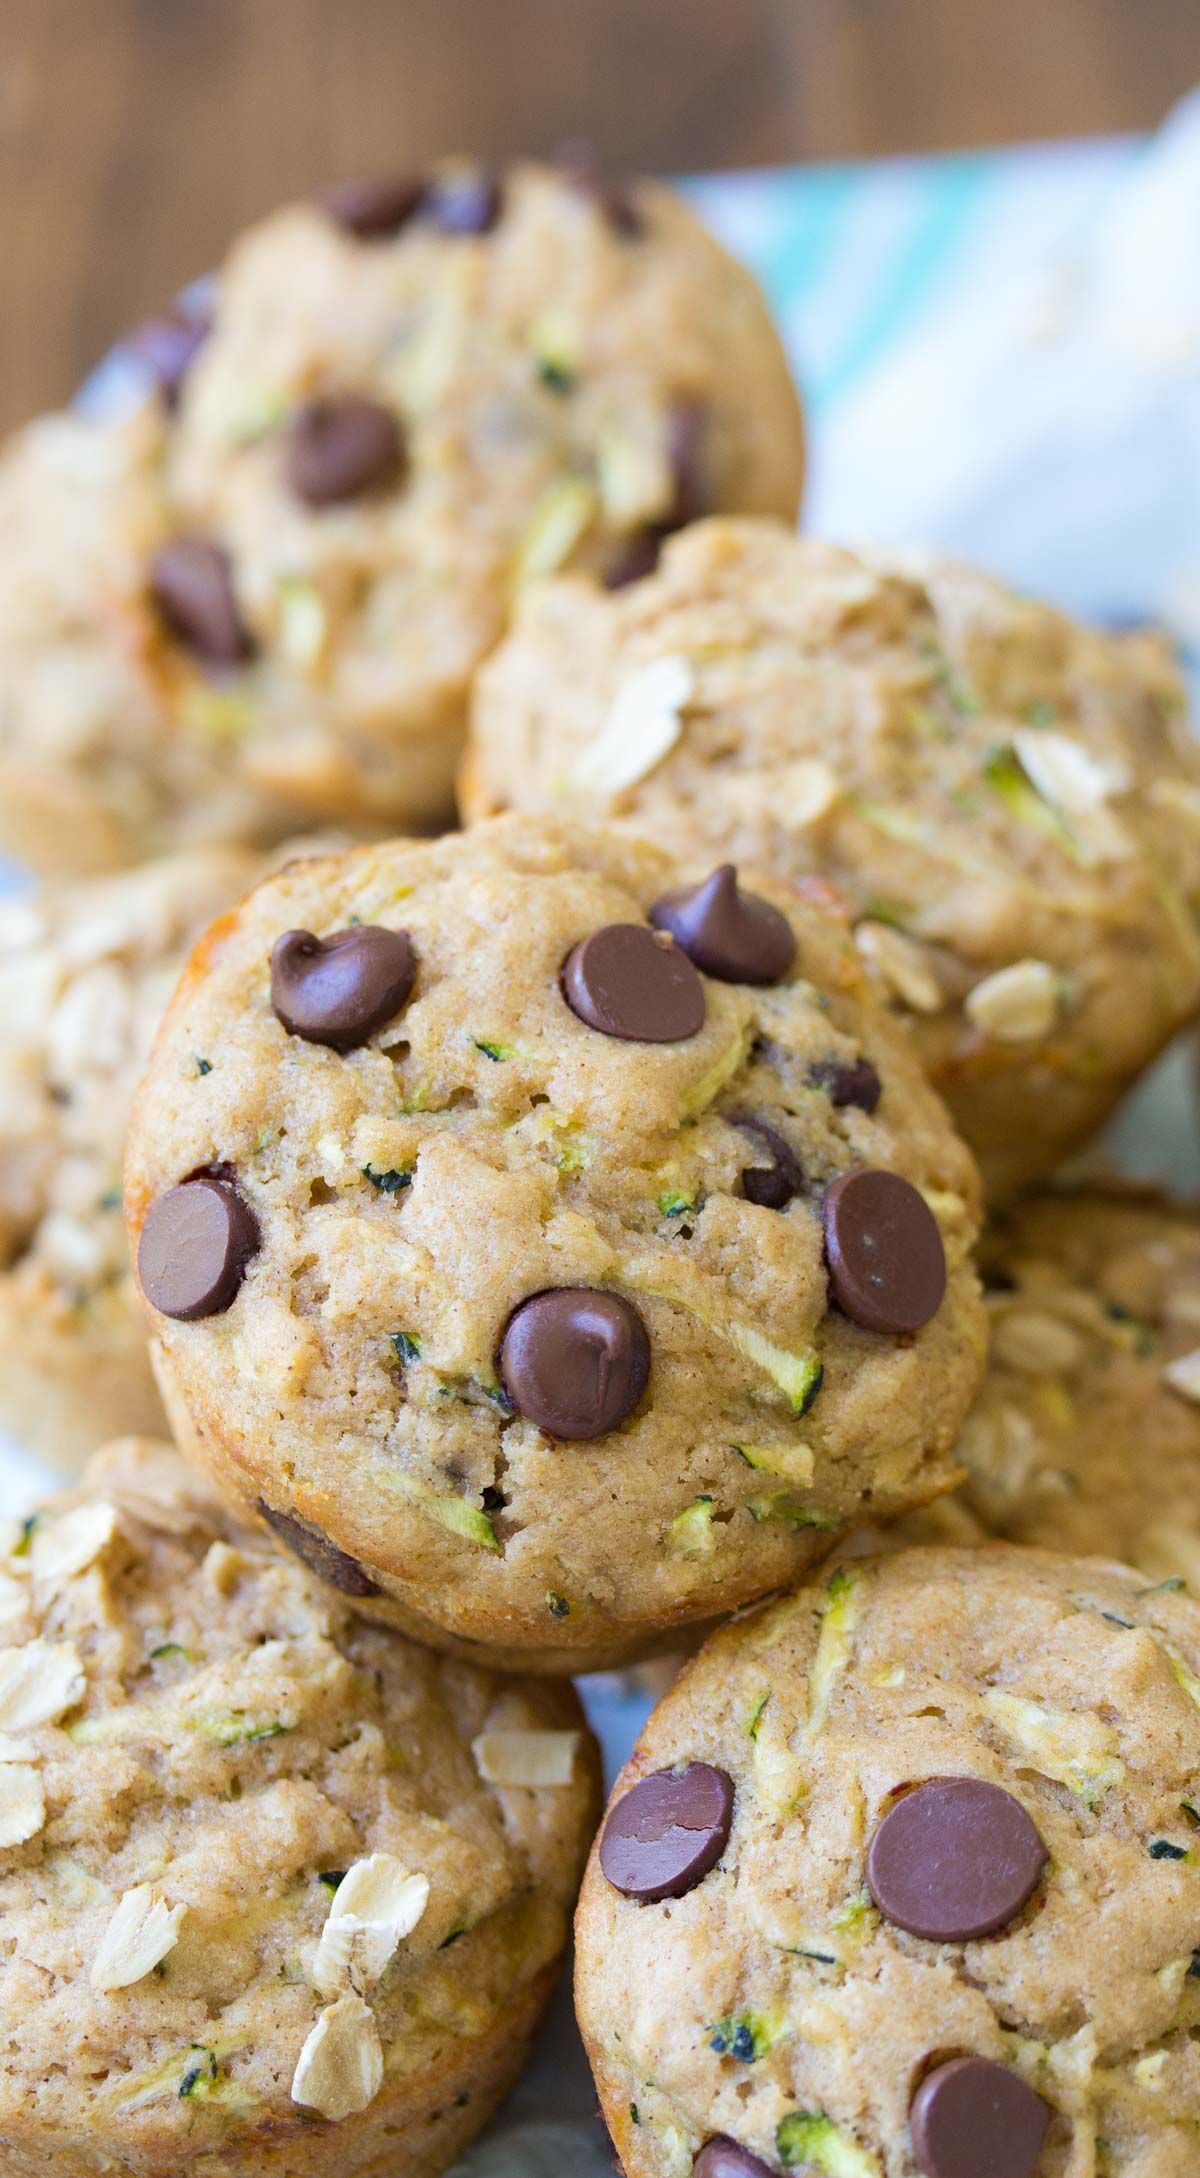 Healthy Zucchini Muffins Made With Chocolate Chips Or Oats Buttermilk Adds Zucchini Chocolate Chip Muffins Chocolate Zucchini Muffins Chocolate Chip Muffins